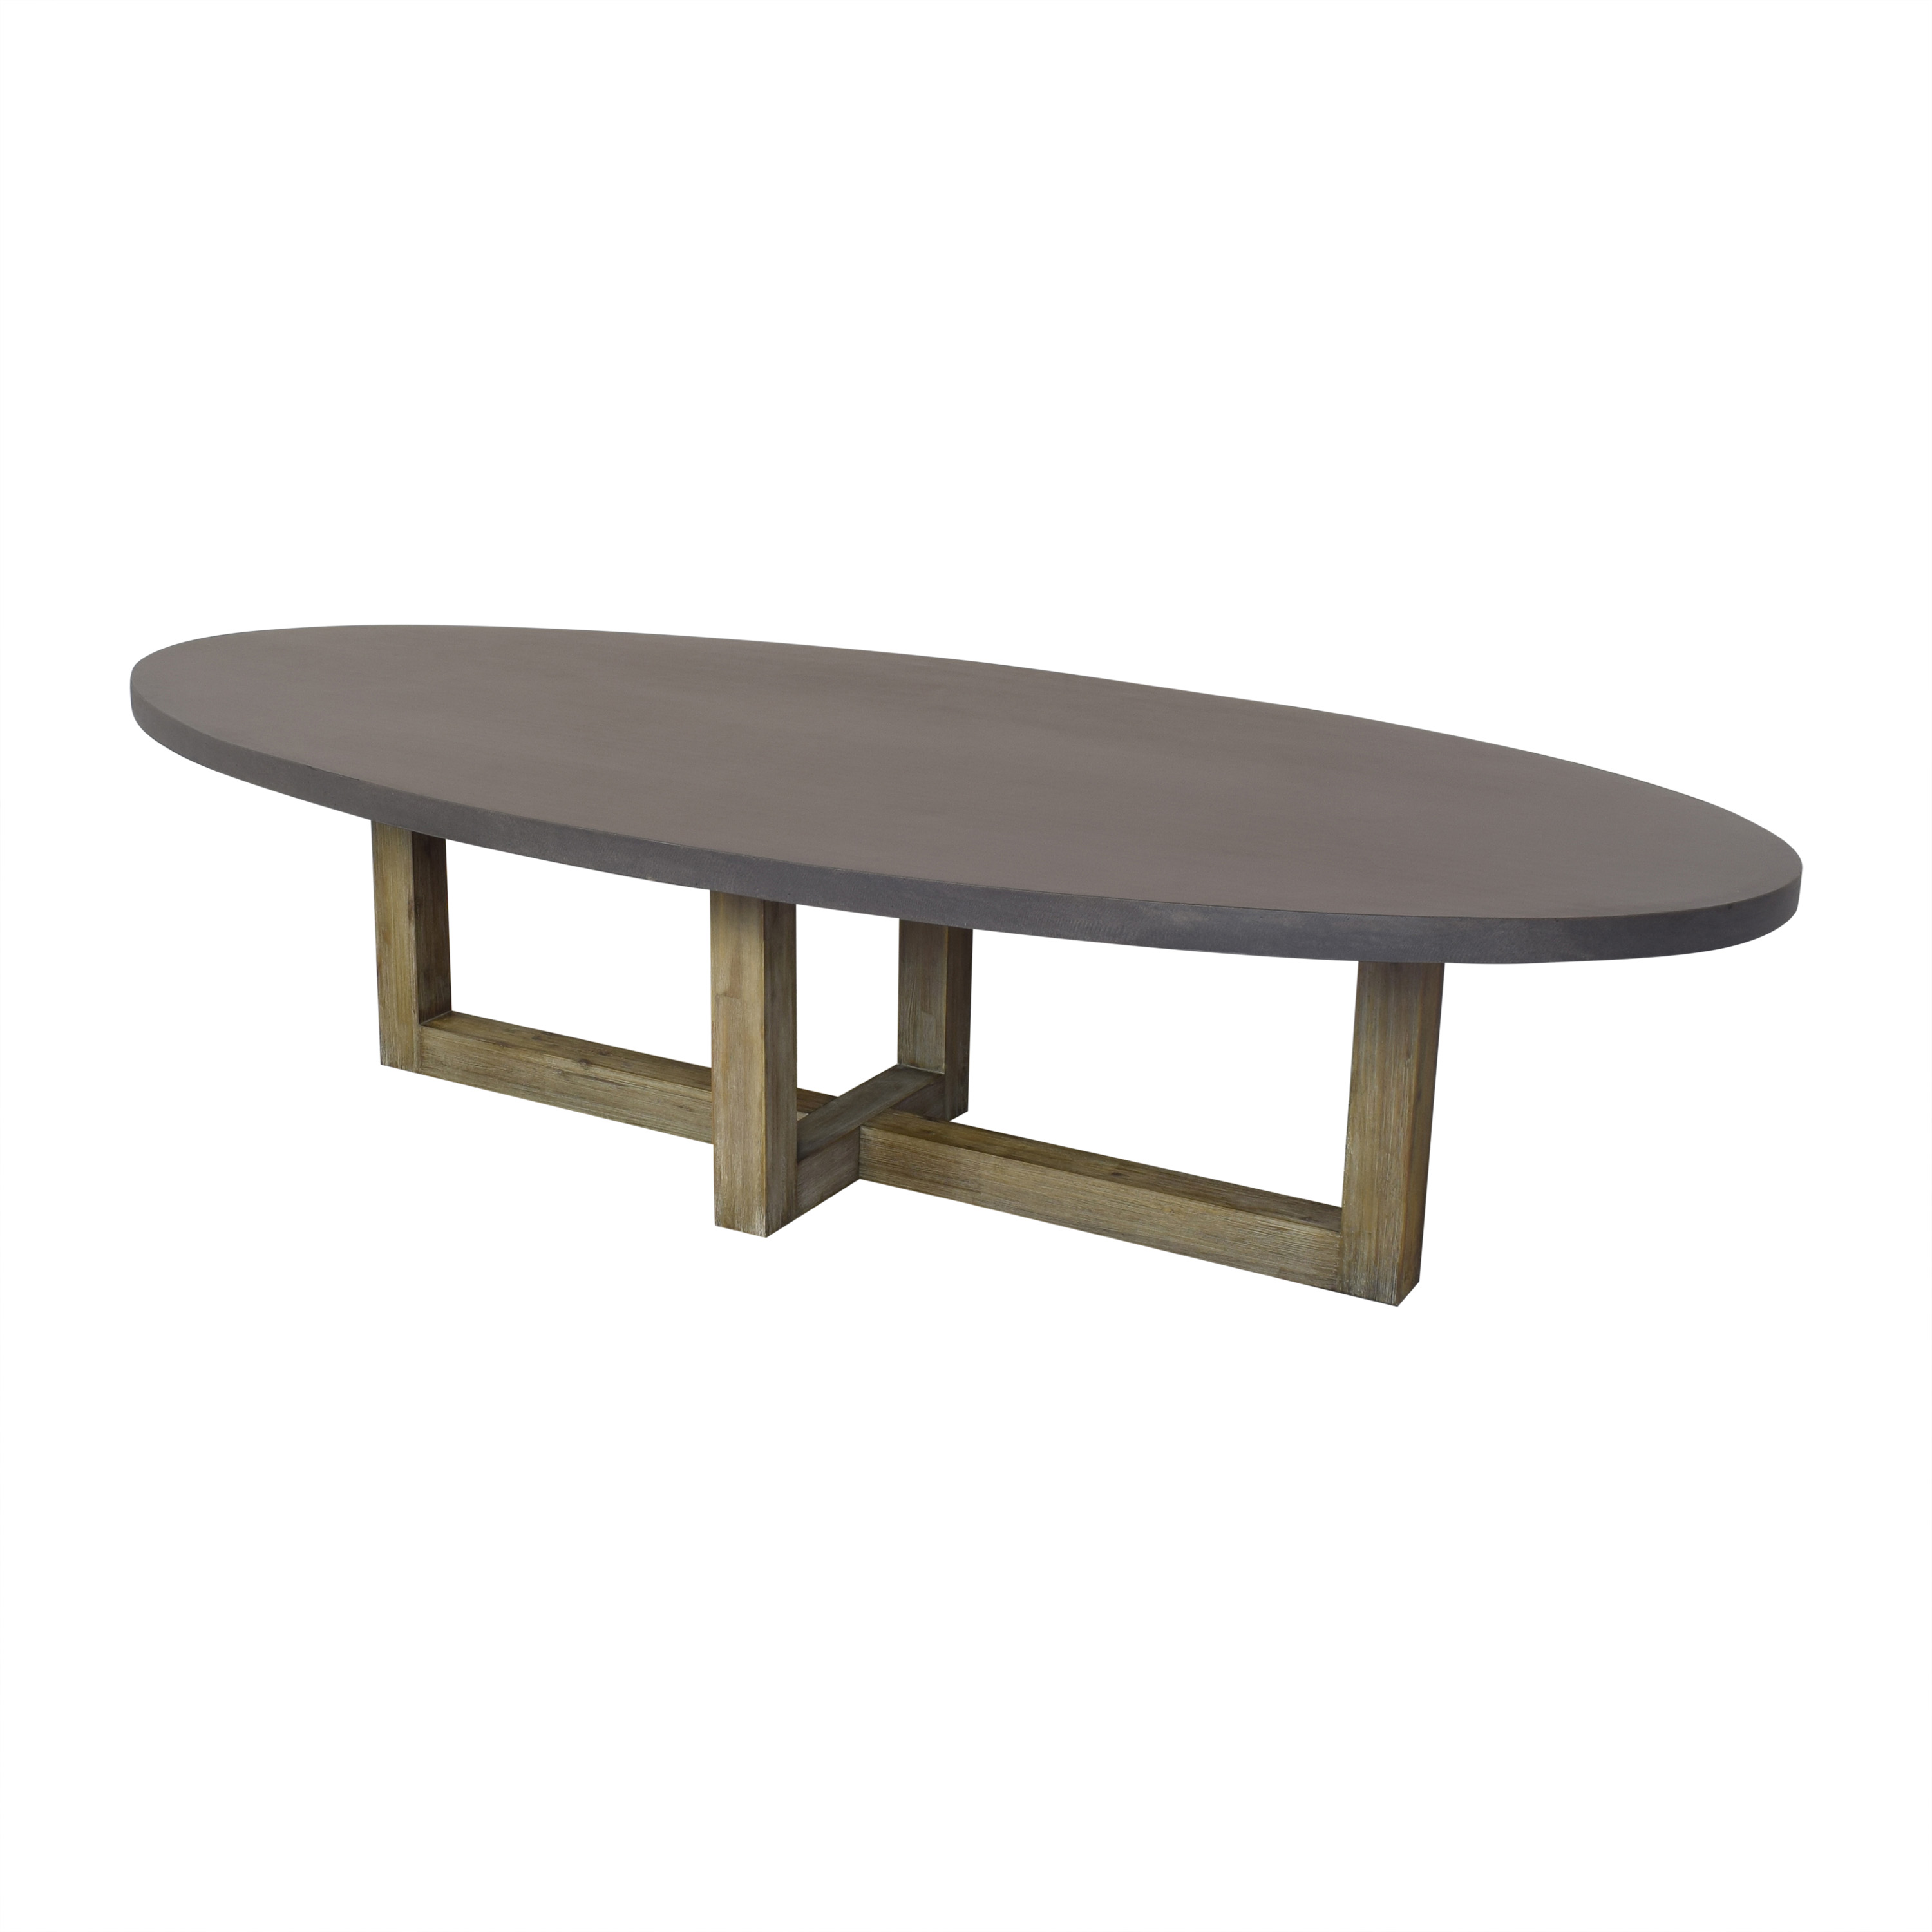 Crate & Barrel Crate & Barrel Woodward Dining Table for sale